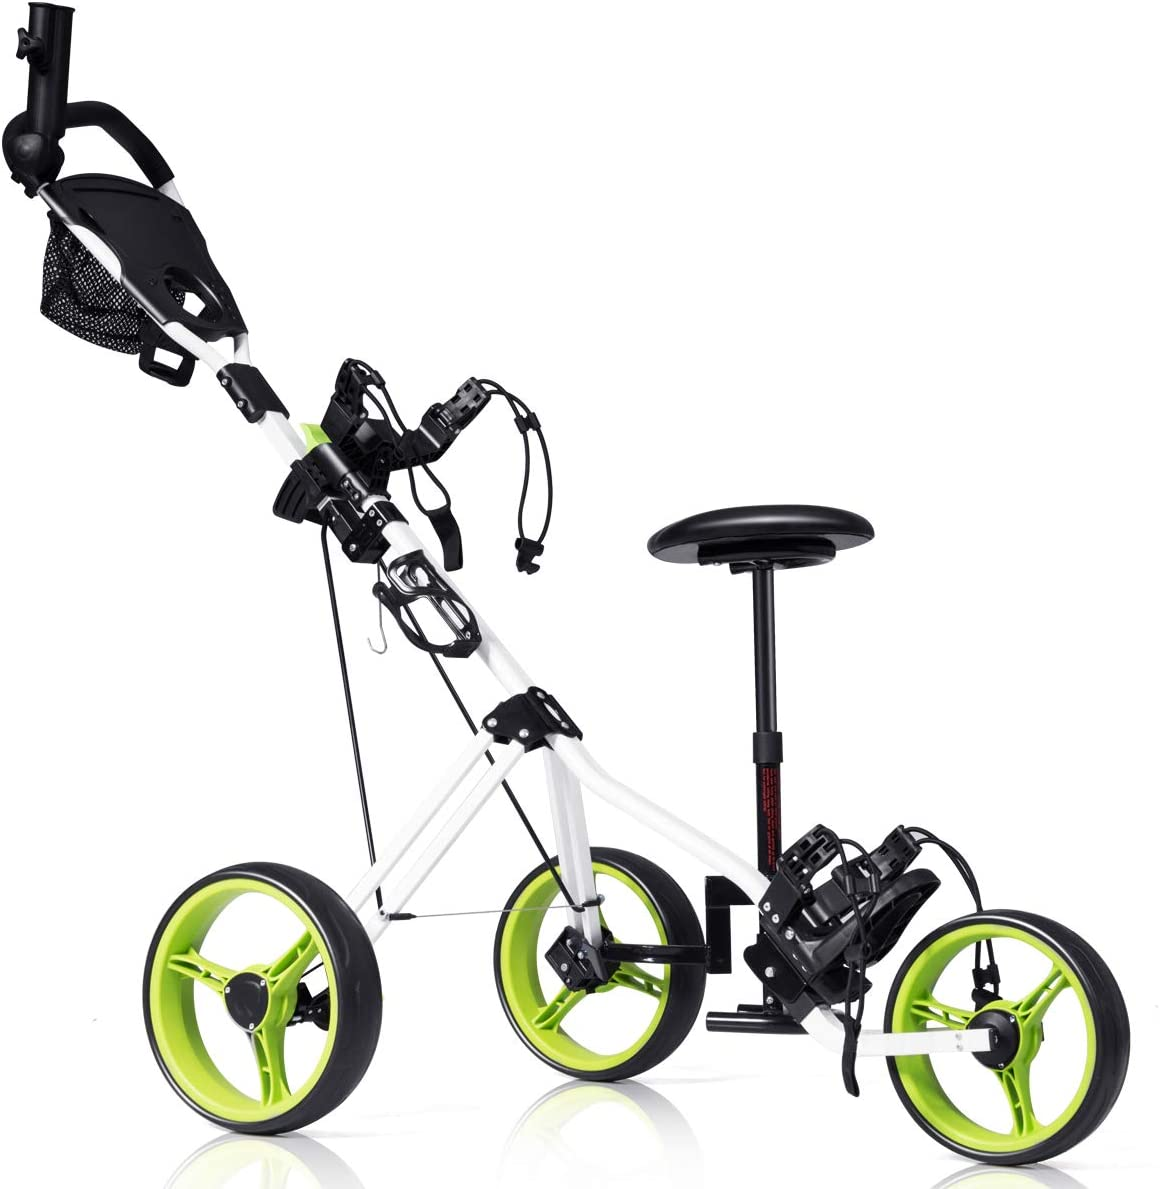 Tangkula Golf PushCart Swivel Foldable 3 Wheel Push Pull Cart Golf Trolley